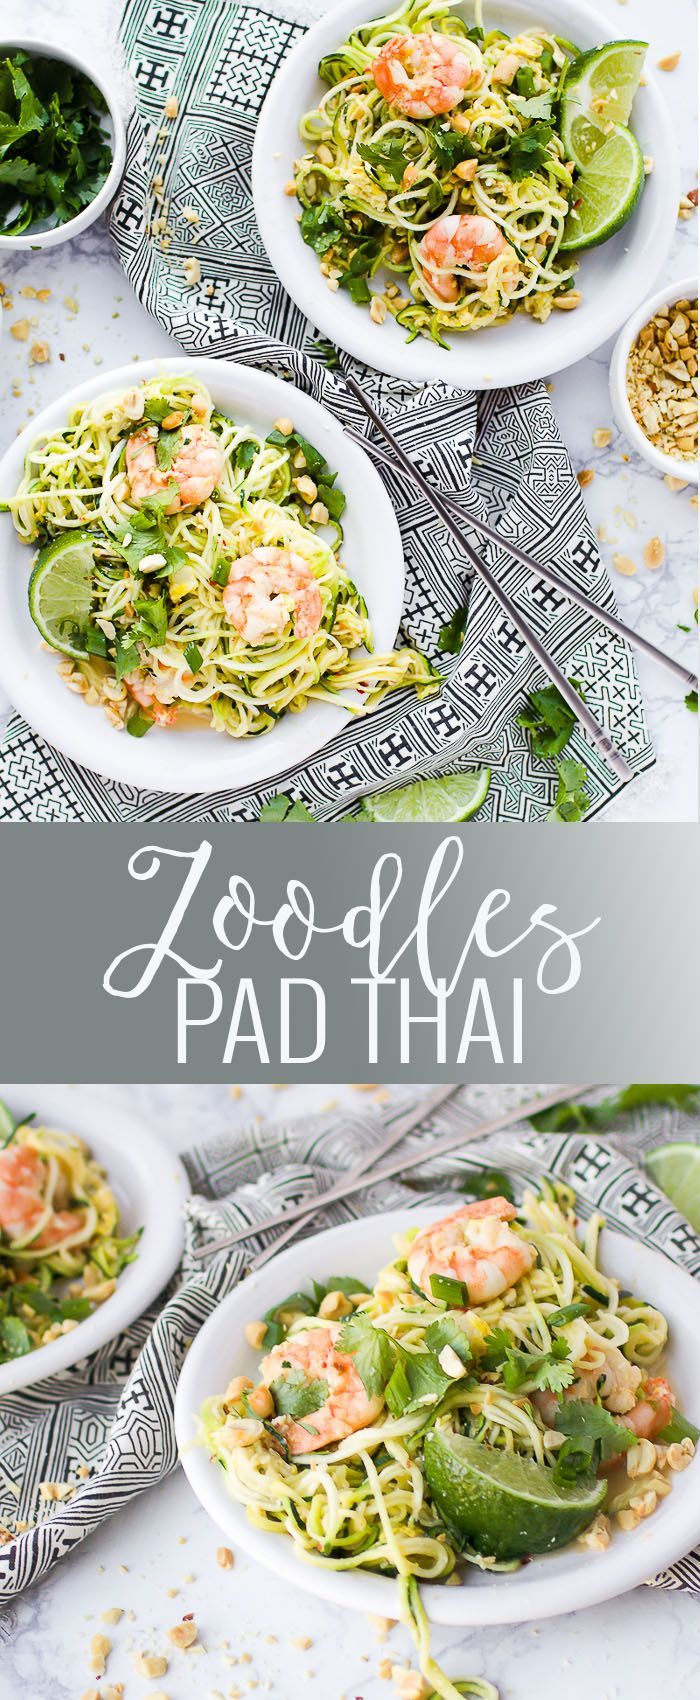 Zoodles Pad Thai | zucchini noodle recipes | pad thai recipes | healthy pad thai recipes | healthy recipes using shrimp | how to make healthy pad thai | homemade zoodle recipes | healthy dinner recipes | healthy noodle alternatives || Oh So Delicioso